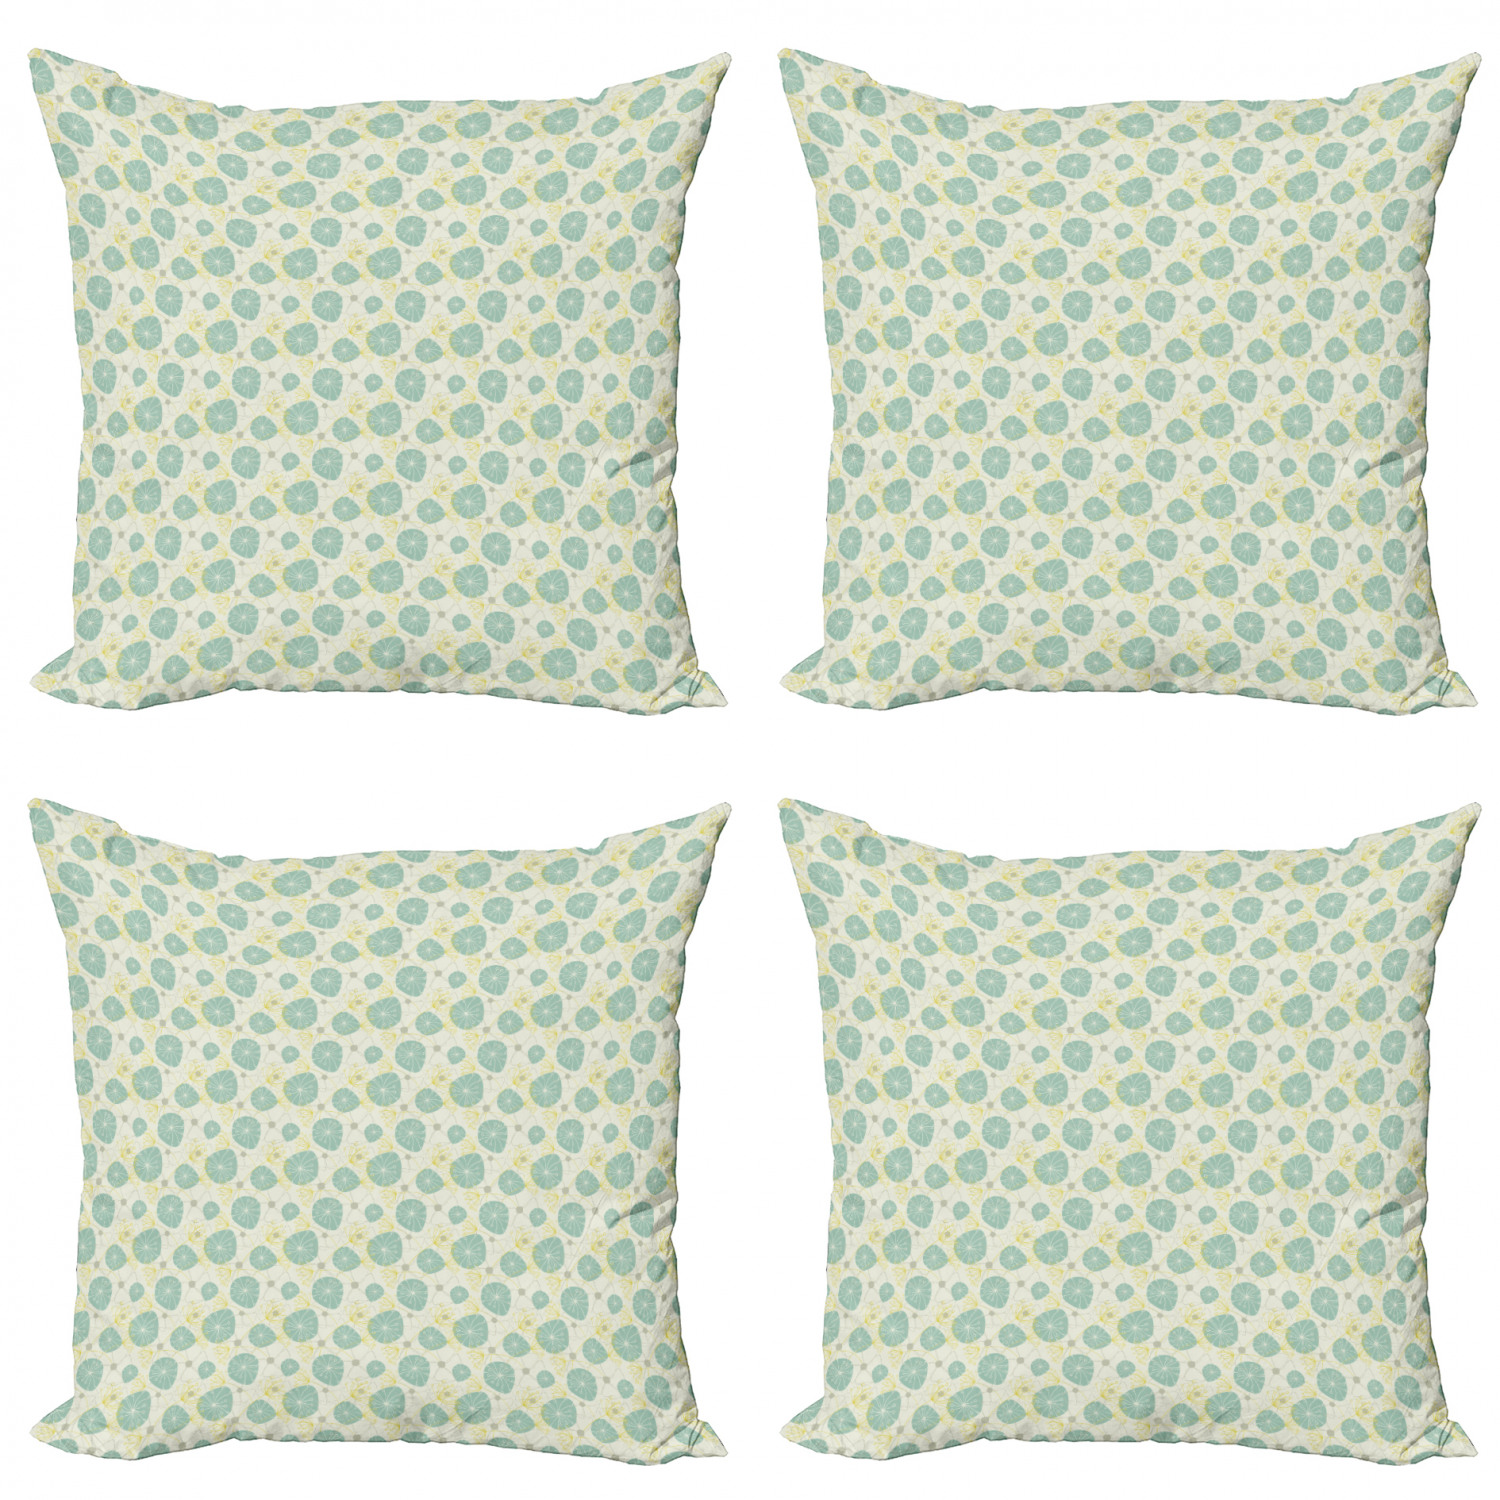 Ambesonne-Floral-Drawings-Cushion-Cover-Set-of-4-for-Couch-and-Bed-in-4-Sizes thumbnail 32